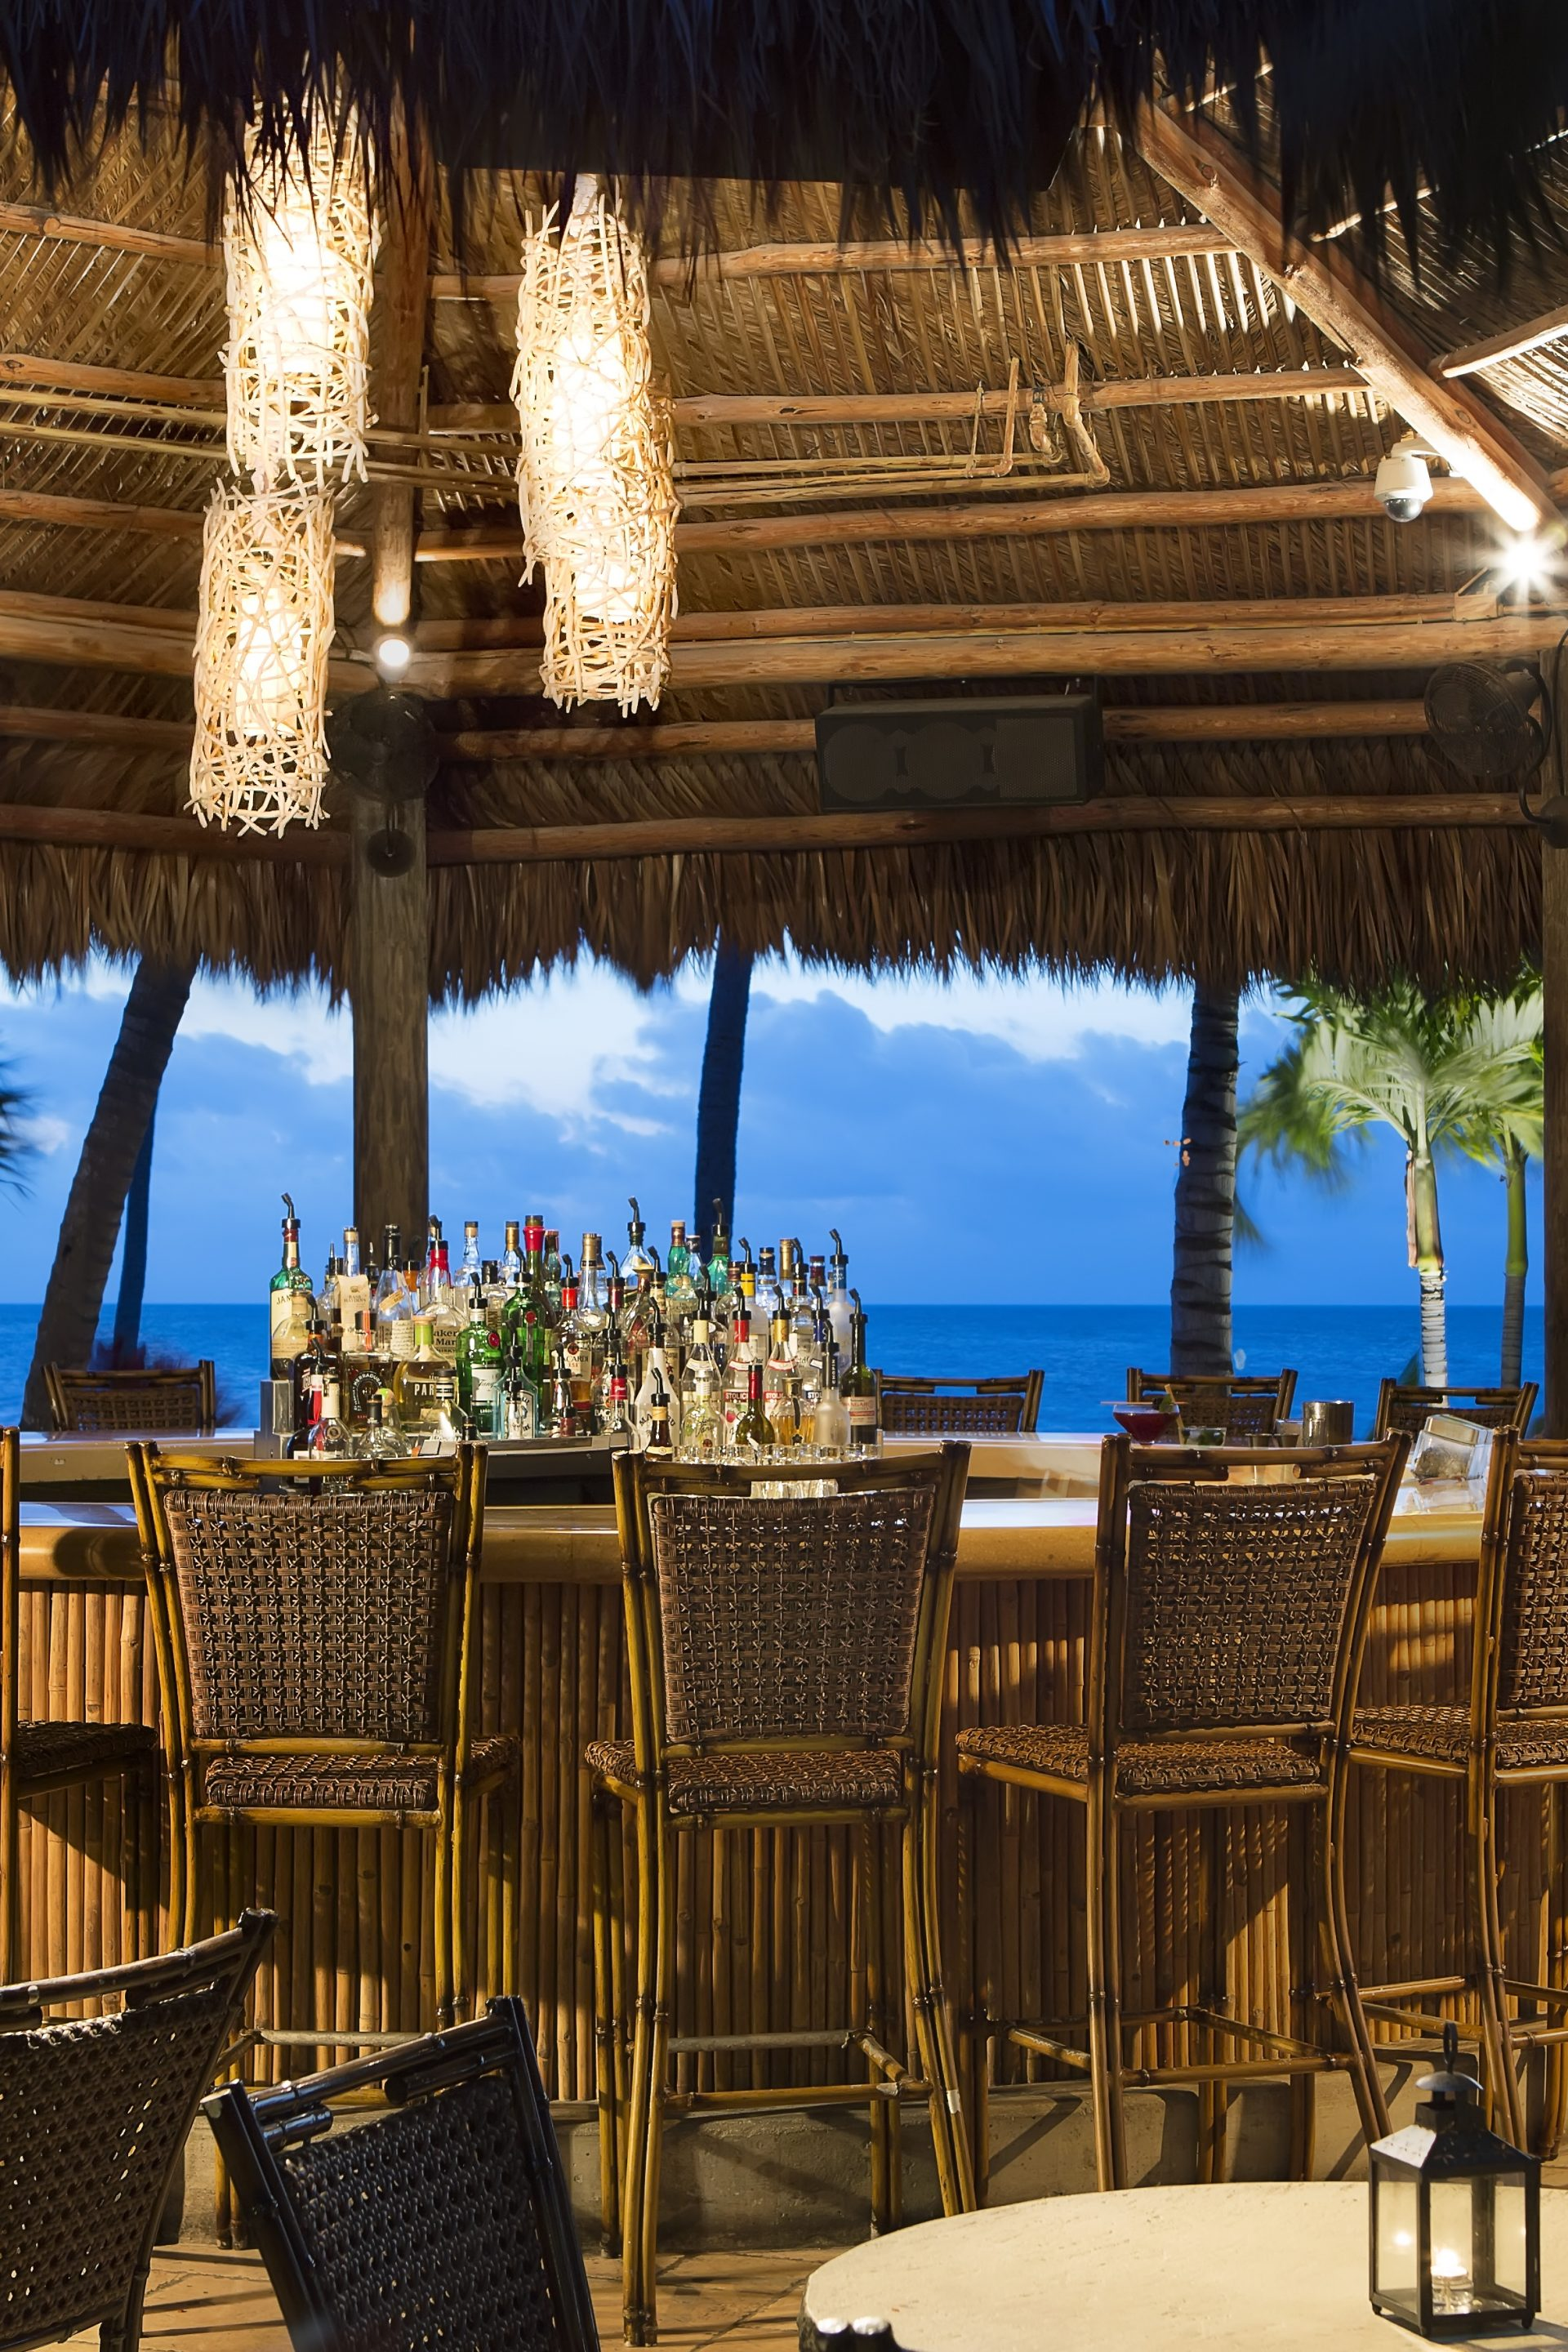 Luxurious Dining Outdoors in the Tiki Bar